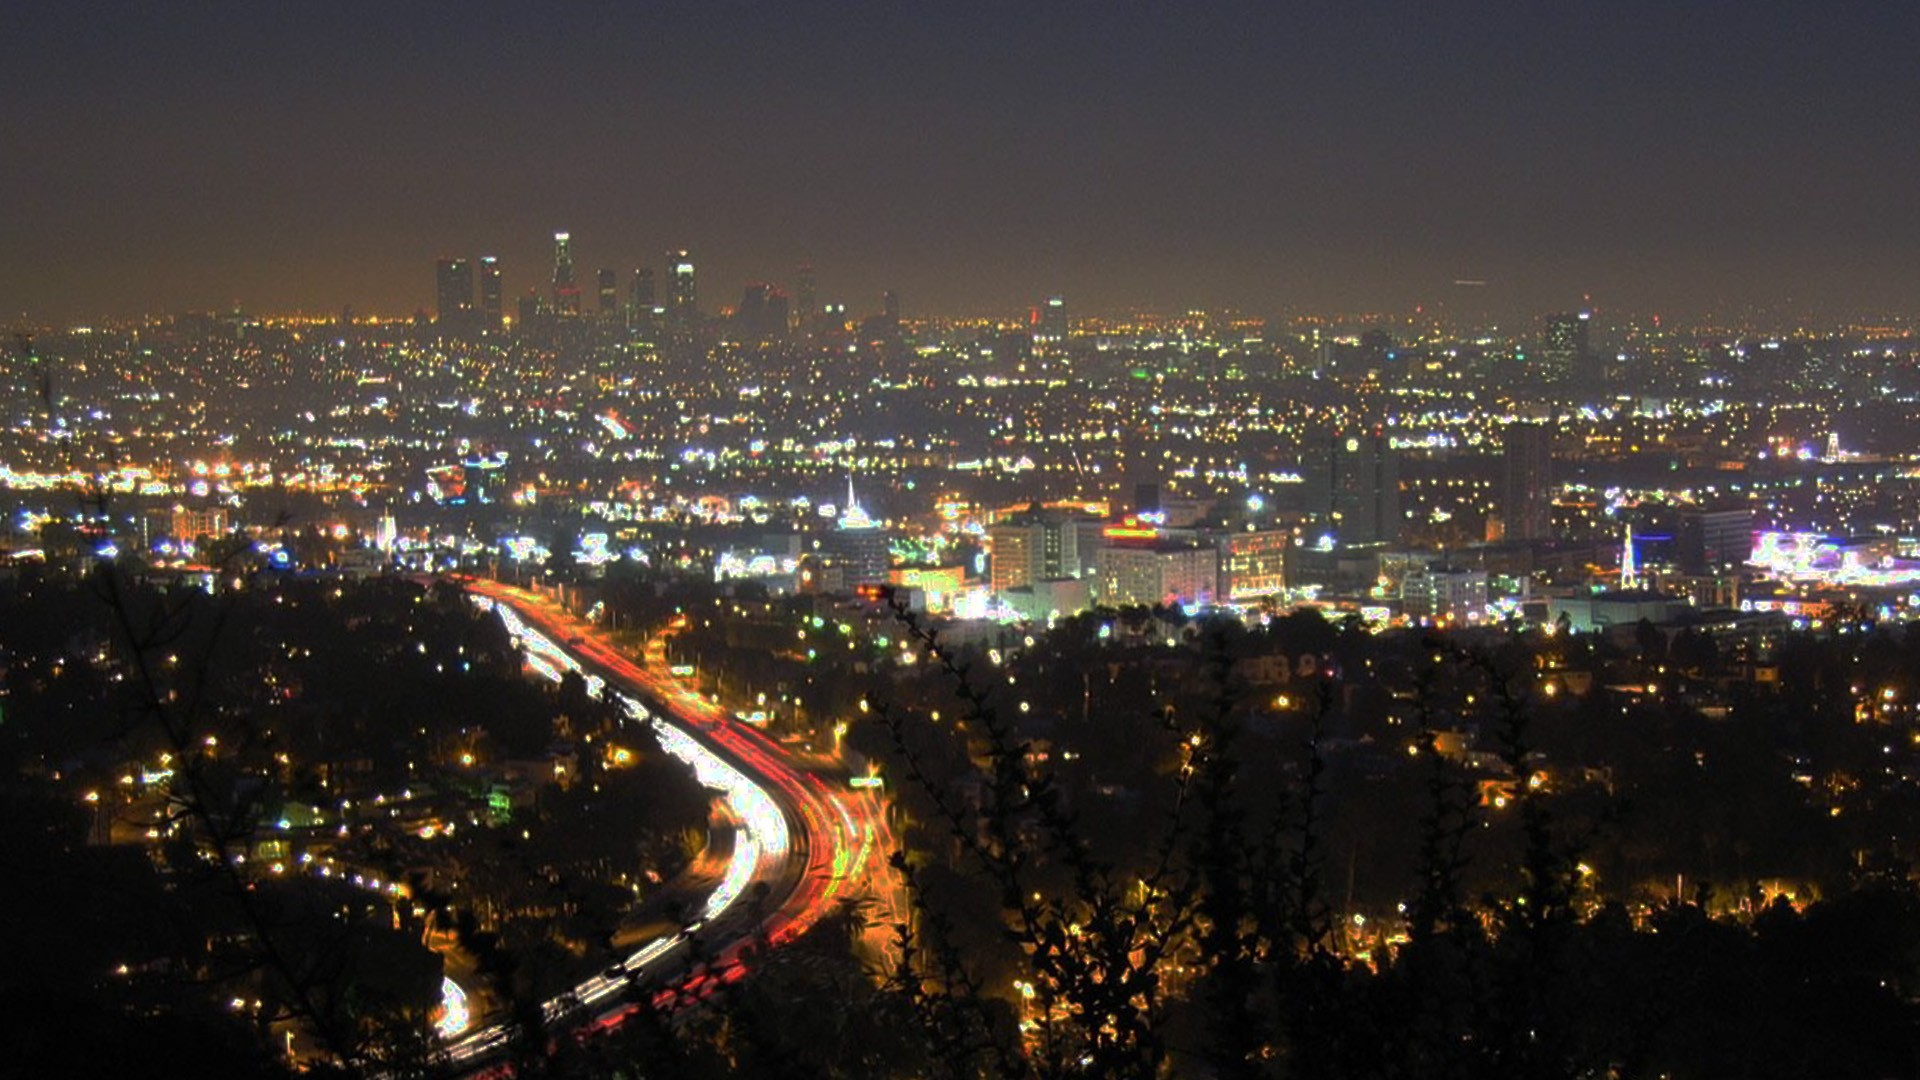 night time in los angeles